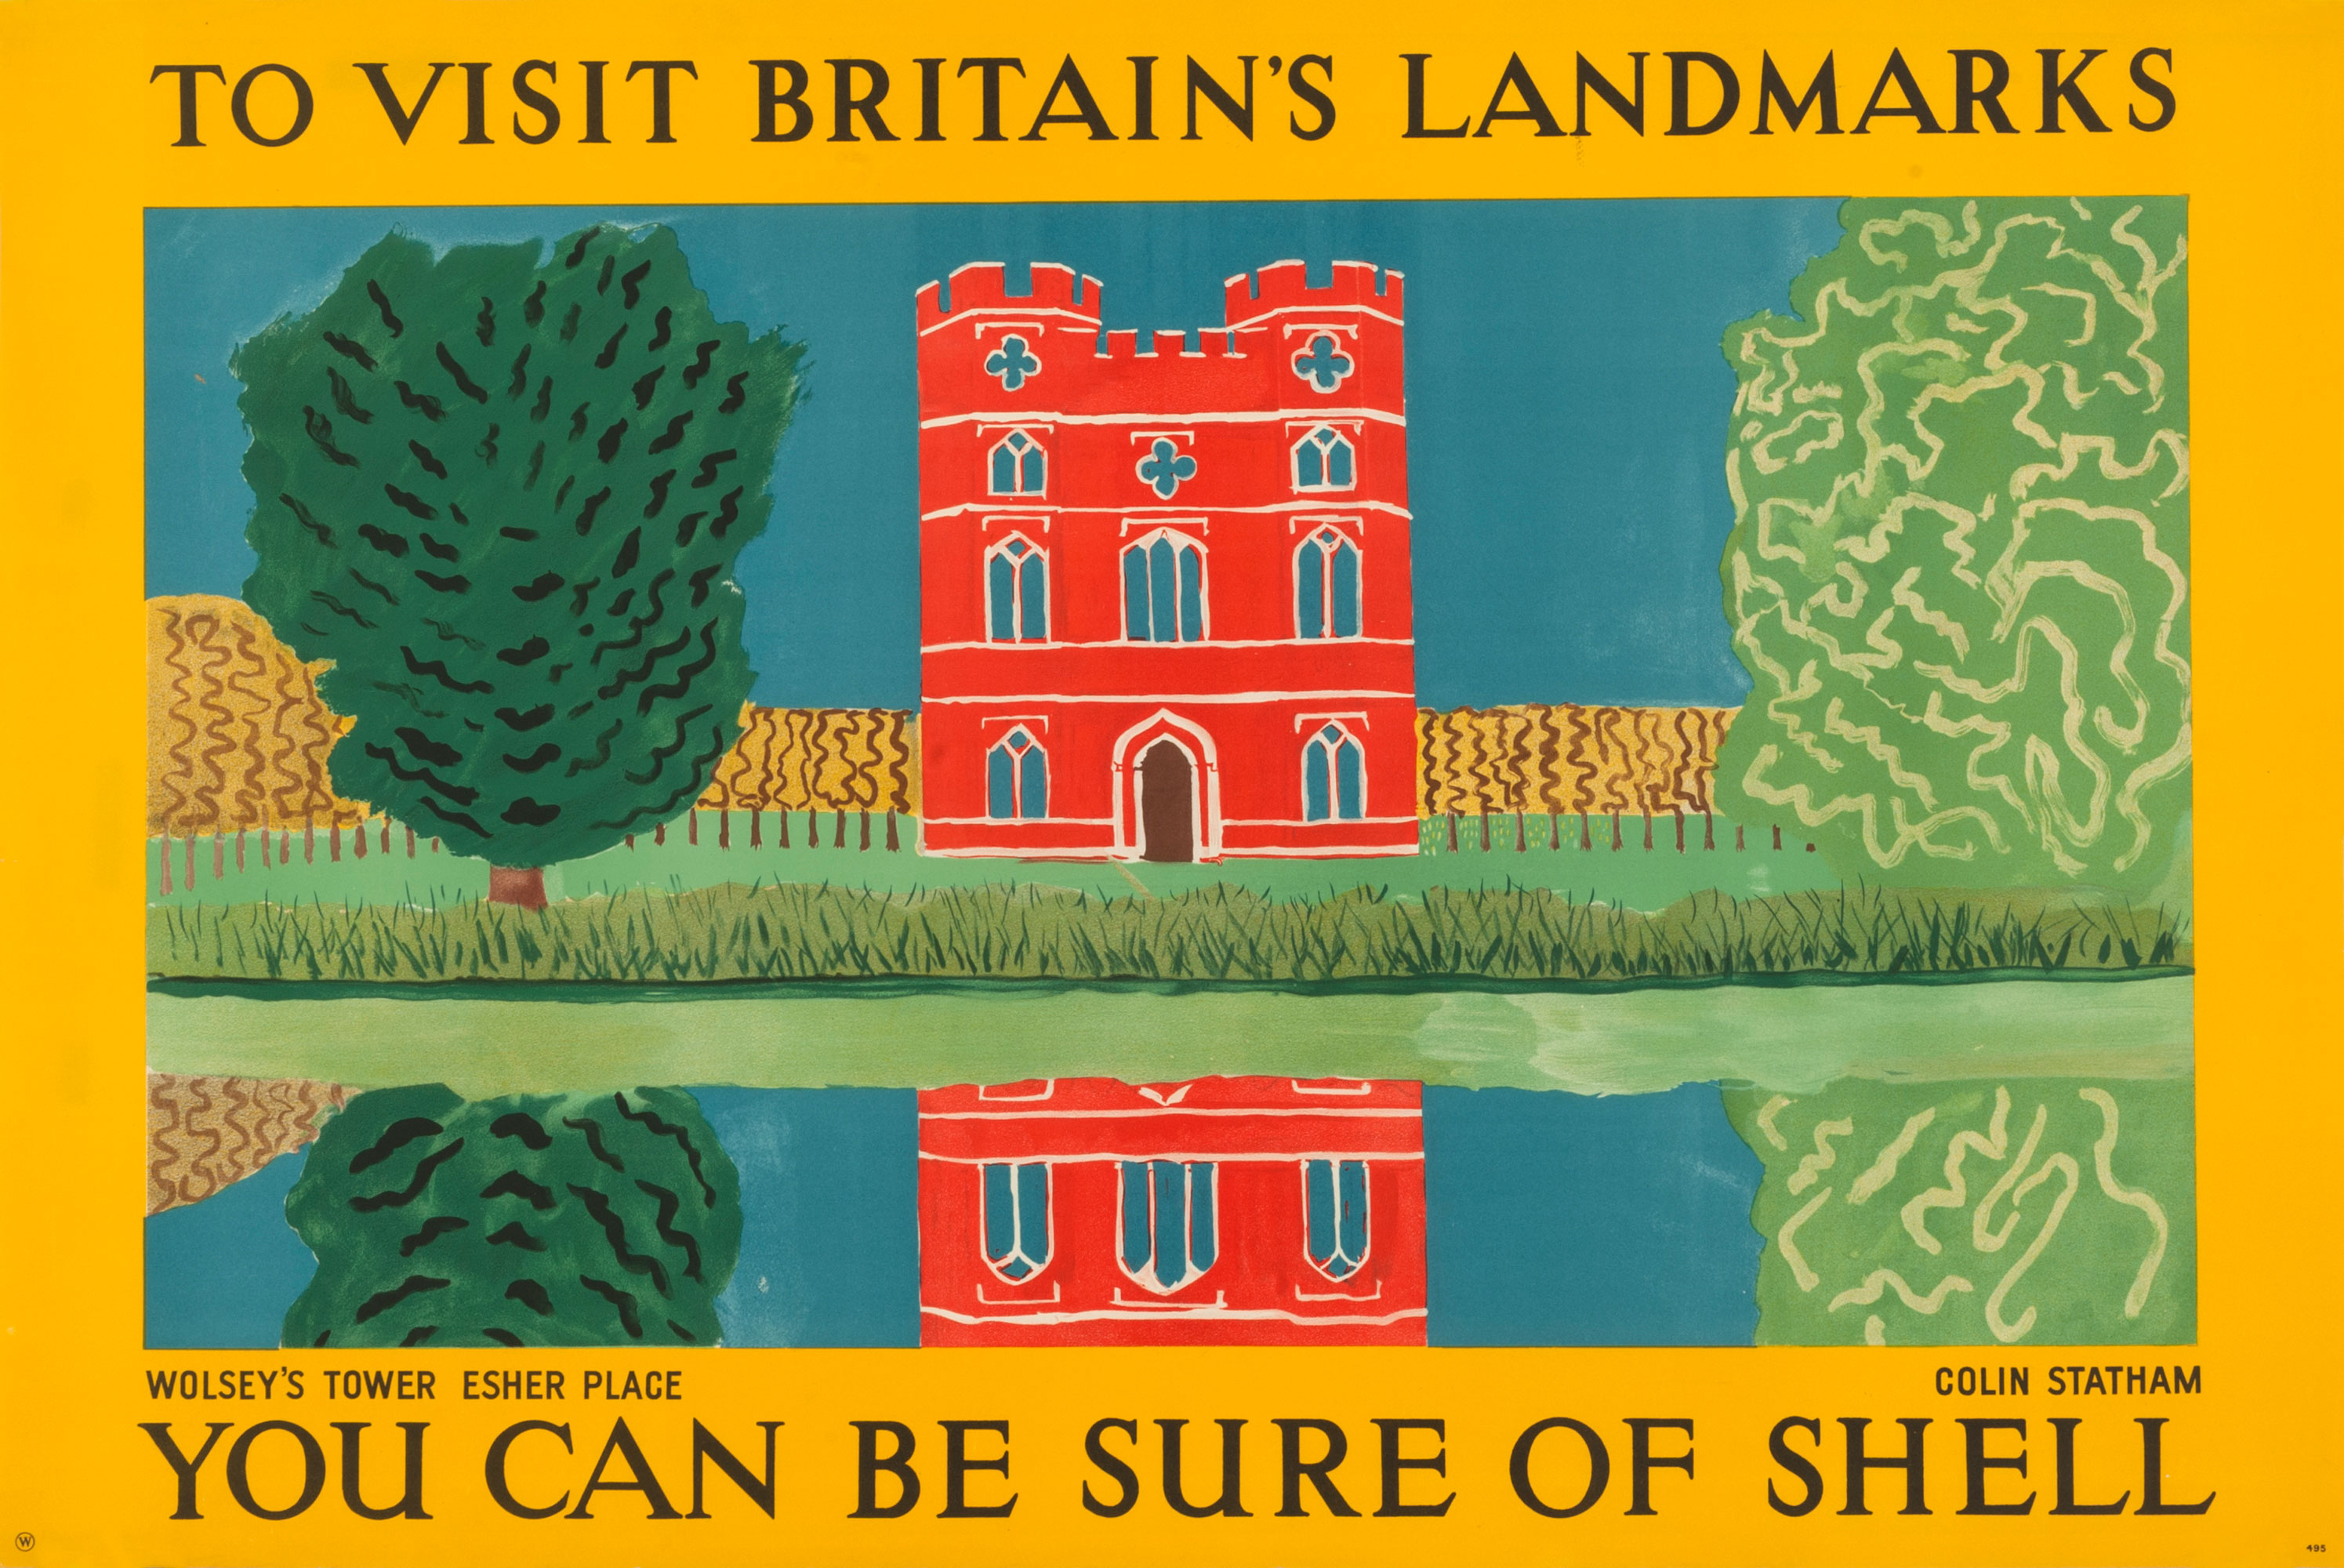 Shell poster number 495, Wolsey's Tower, Esher by Colin Statham. Stylised landscape painting of Wolsey's Tower at Esher Place, reflected in a lake.